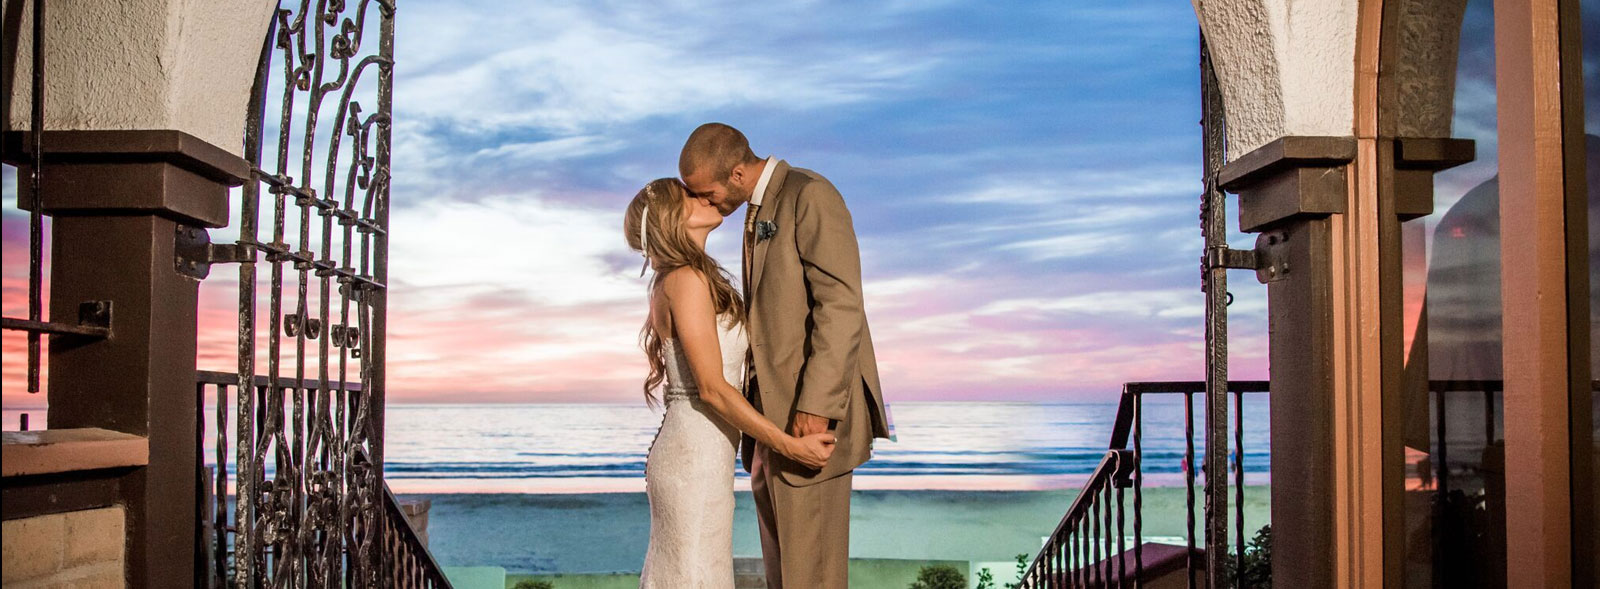 Wedding Overview of La Jolla Shores Hotel California